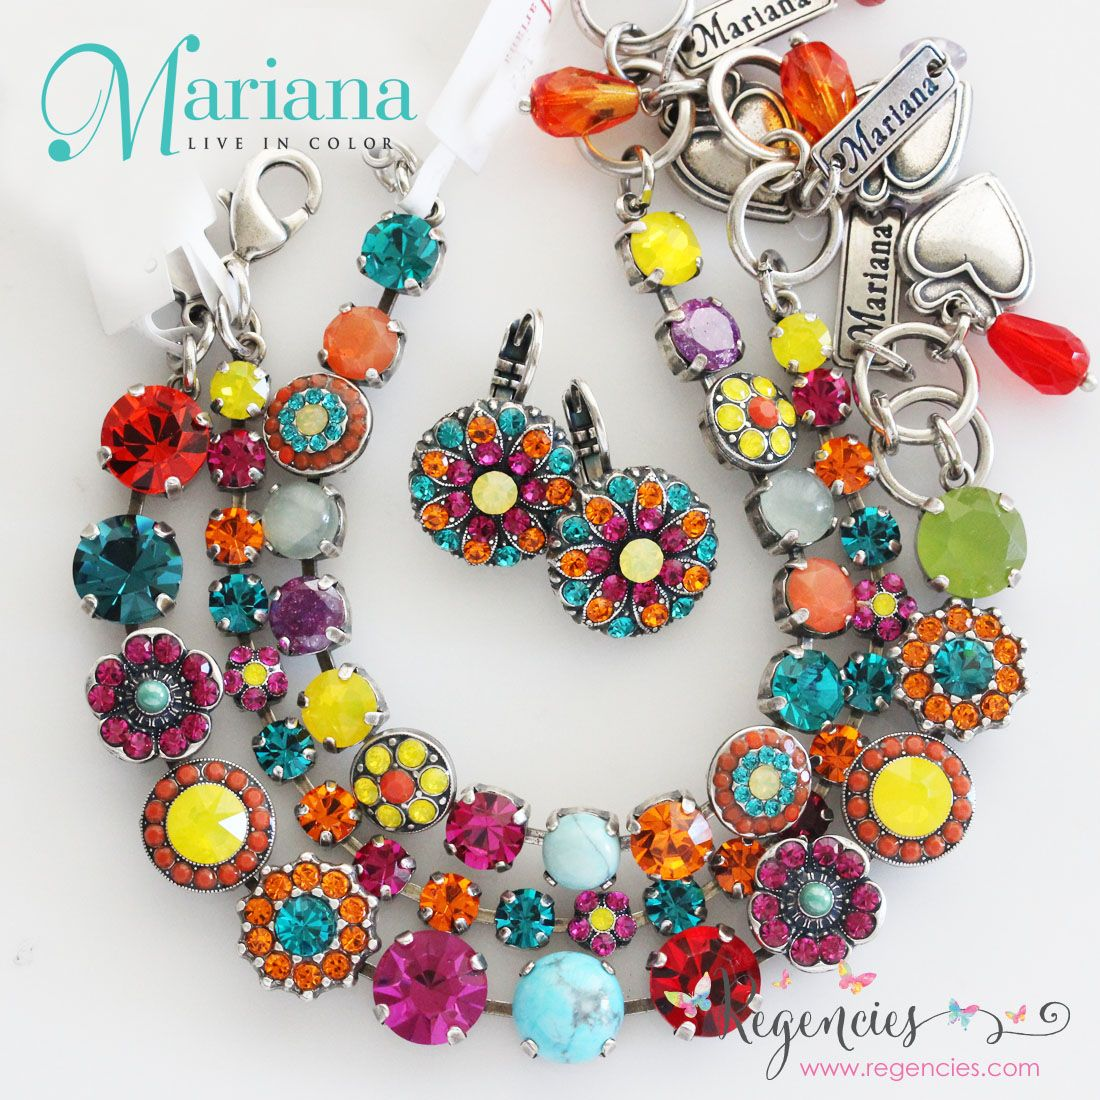 Mariana S Masai Bracelets And Earrings Burst With Hy Colors Guaranteed To Brighten Your Days Available At Regencies